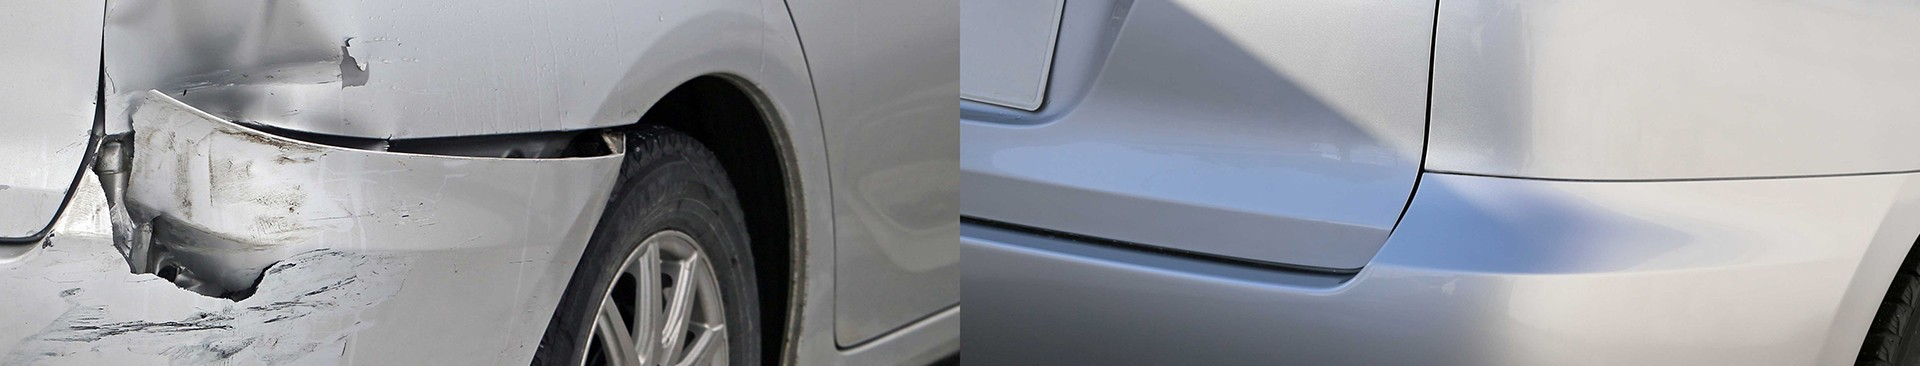 before and after dent